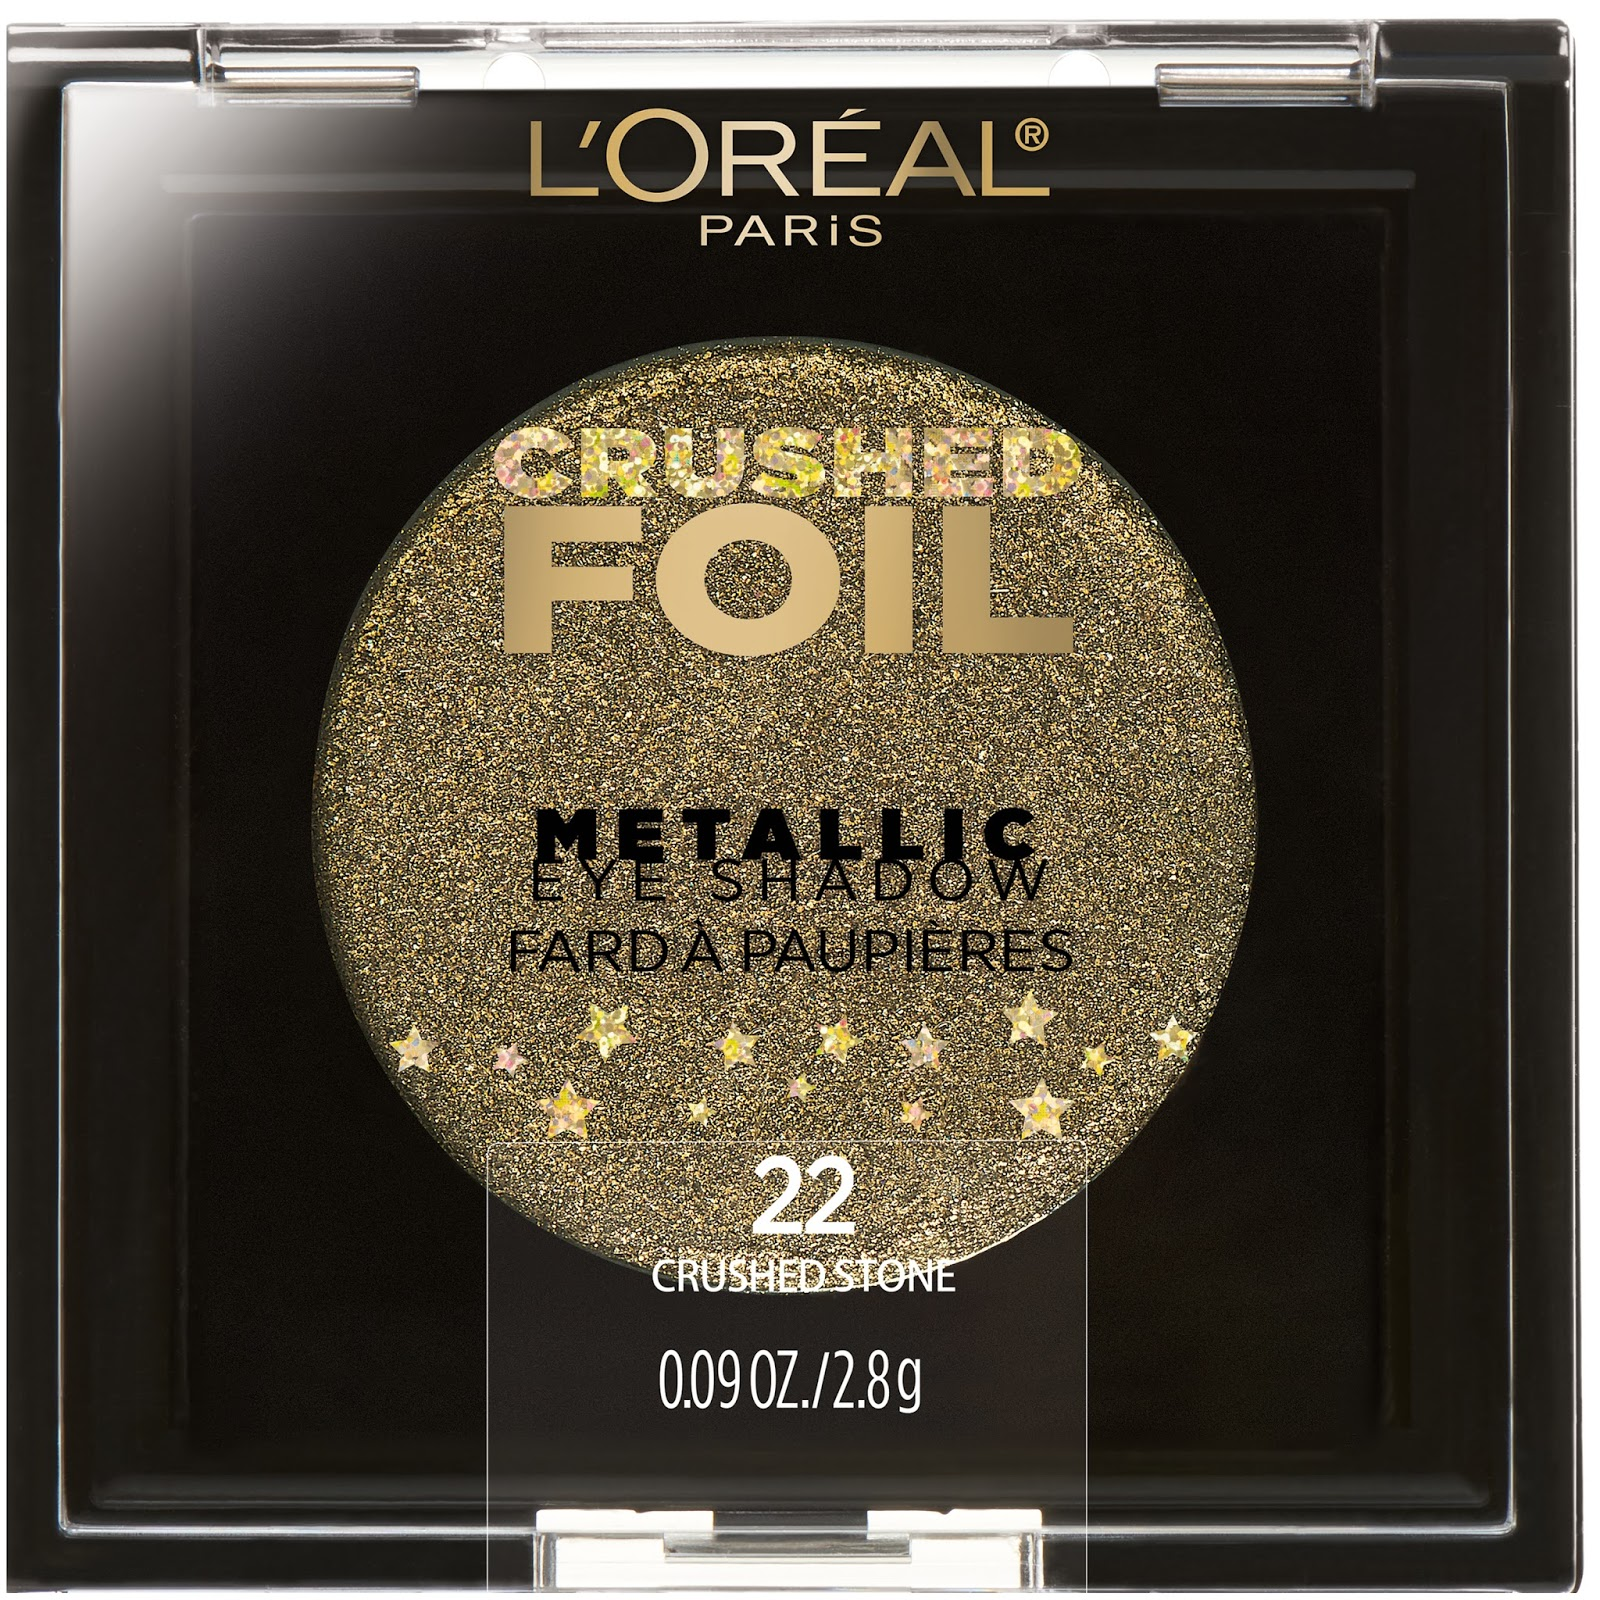 4adbf65aab6 L'Oréal Introduces The Crushed Foils Collection: Available Exclusively at  WalMart! #LOREAL #LOREALPARIS #CrushedFoilsCollection